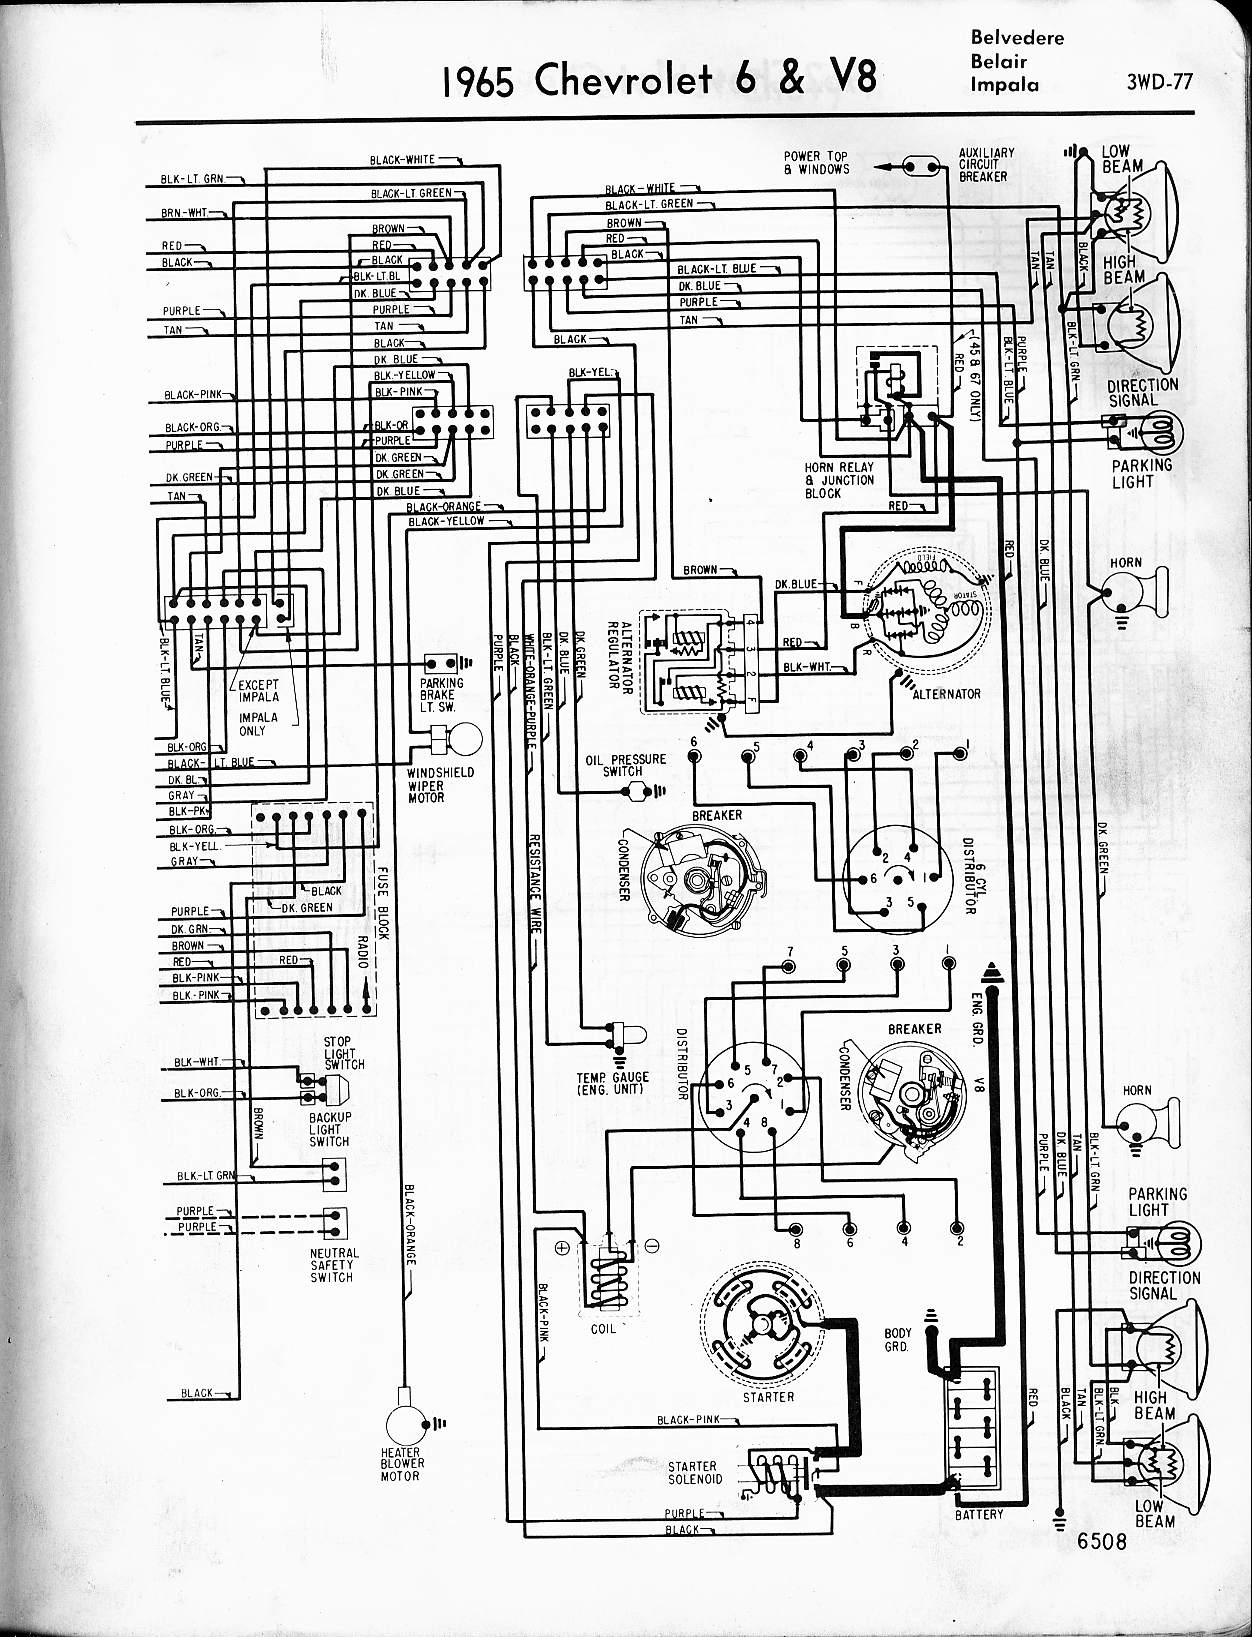 MWireChev65_3WD 077 chevy diagrams 1970 chevelle dash wiring diagram at suagrazia.org